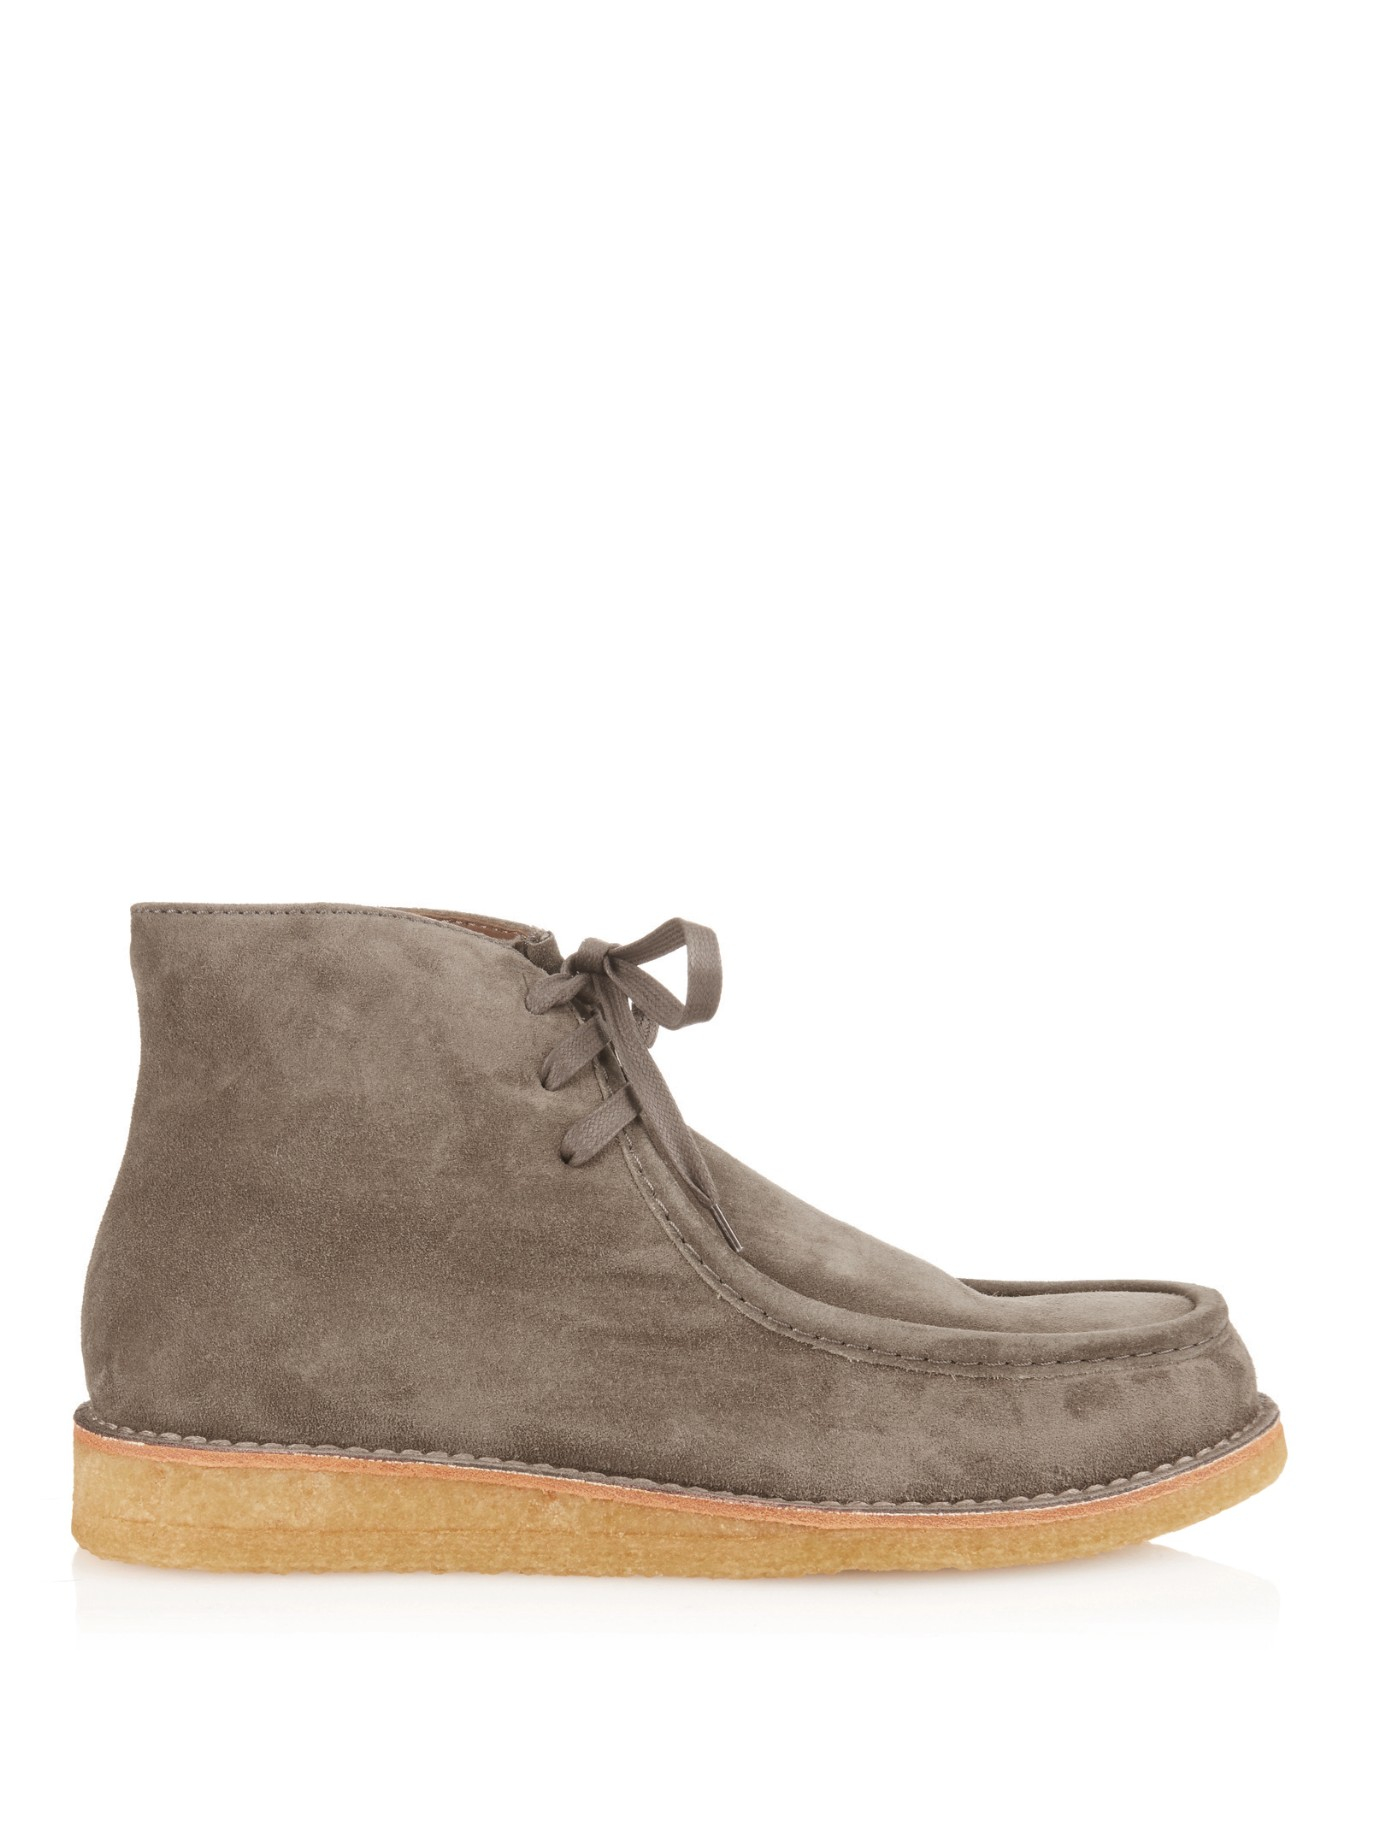 tomas maier lace up suede boots in gray for lyst